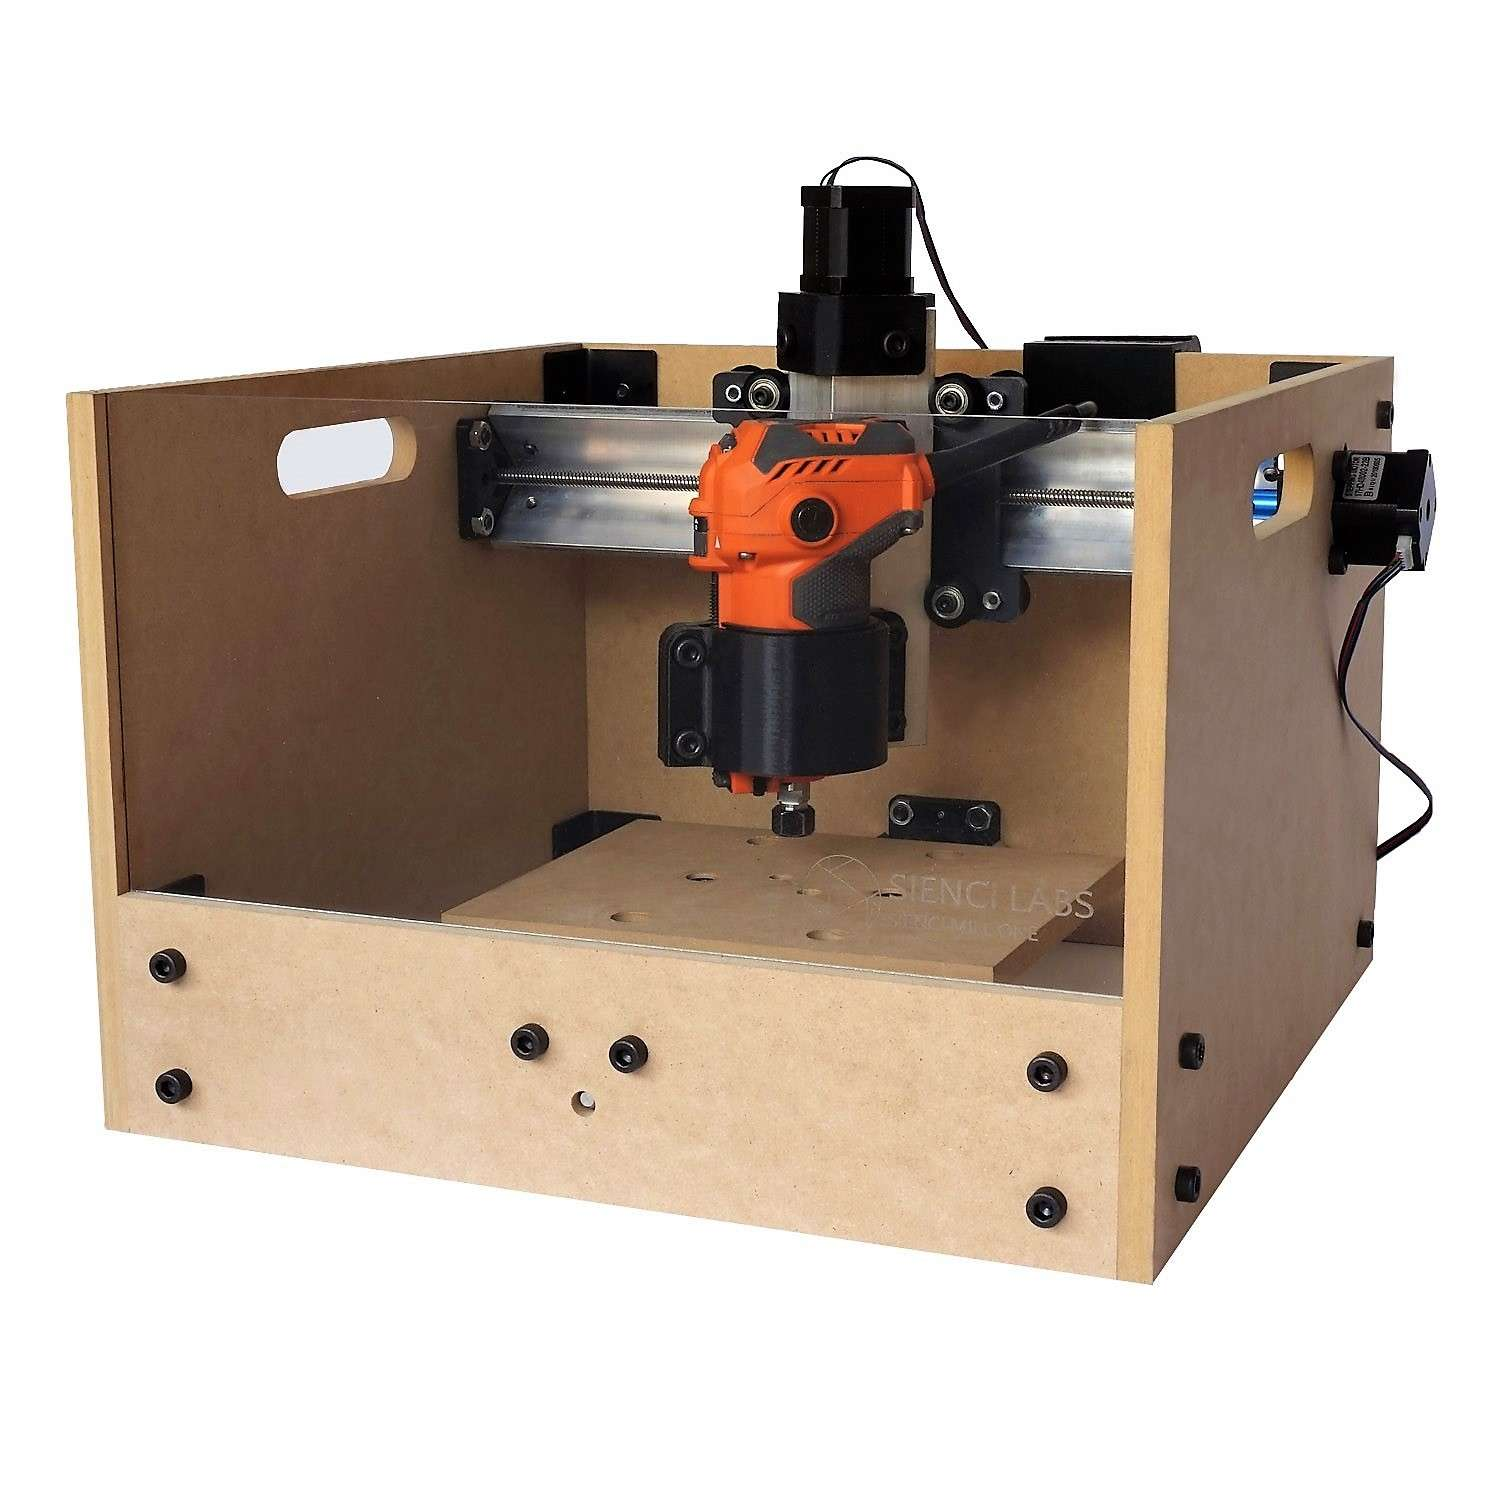 Sienci Mill One Kit V3 Labs Cut Pcb Circuit Board Cutter Manual For Cutting Metal Previous